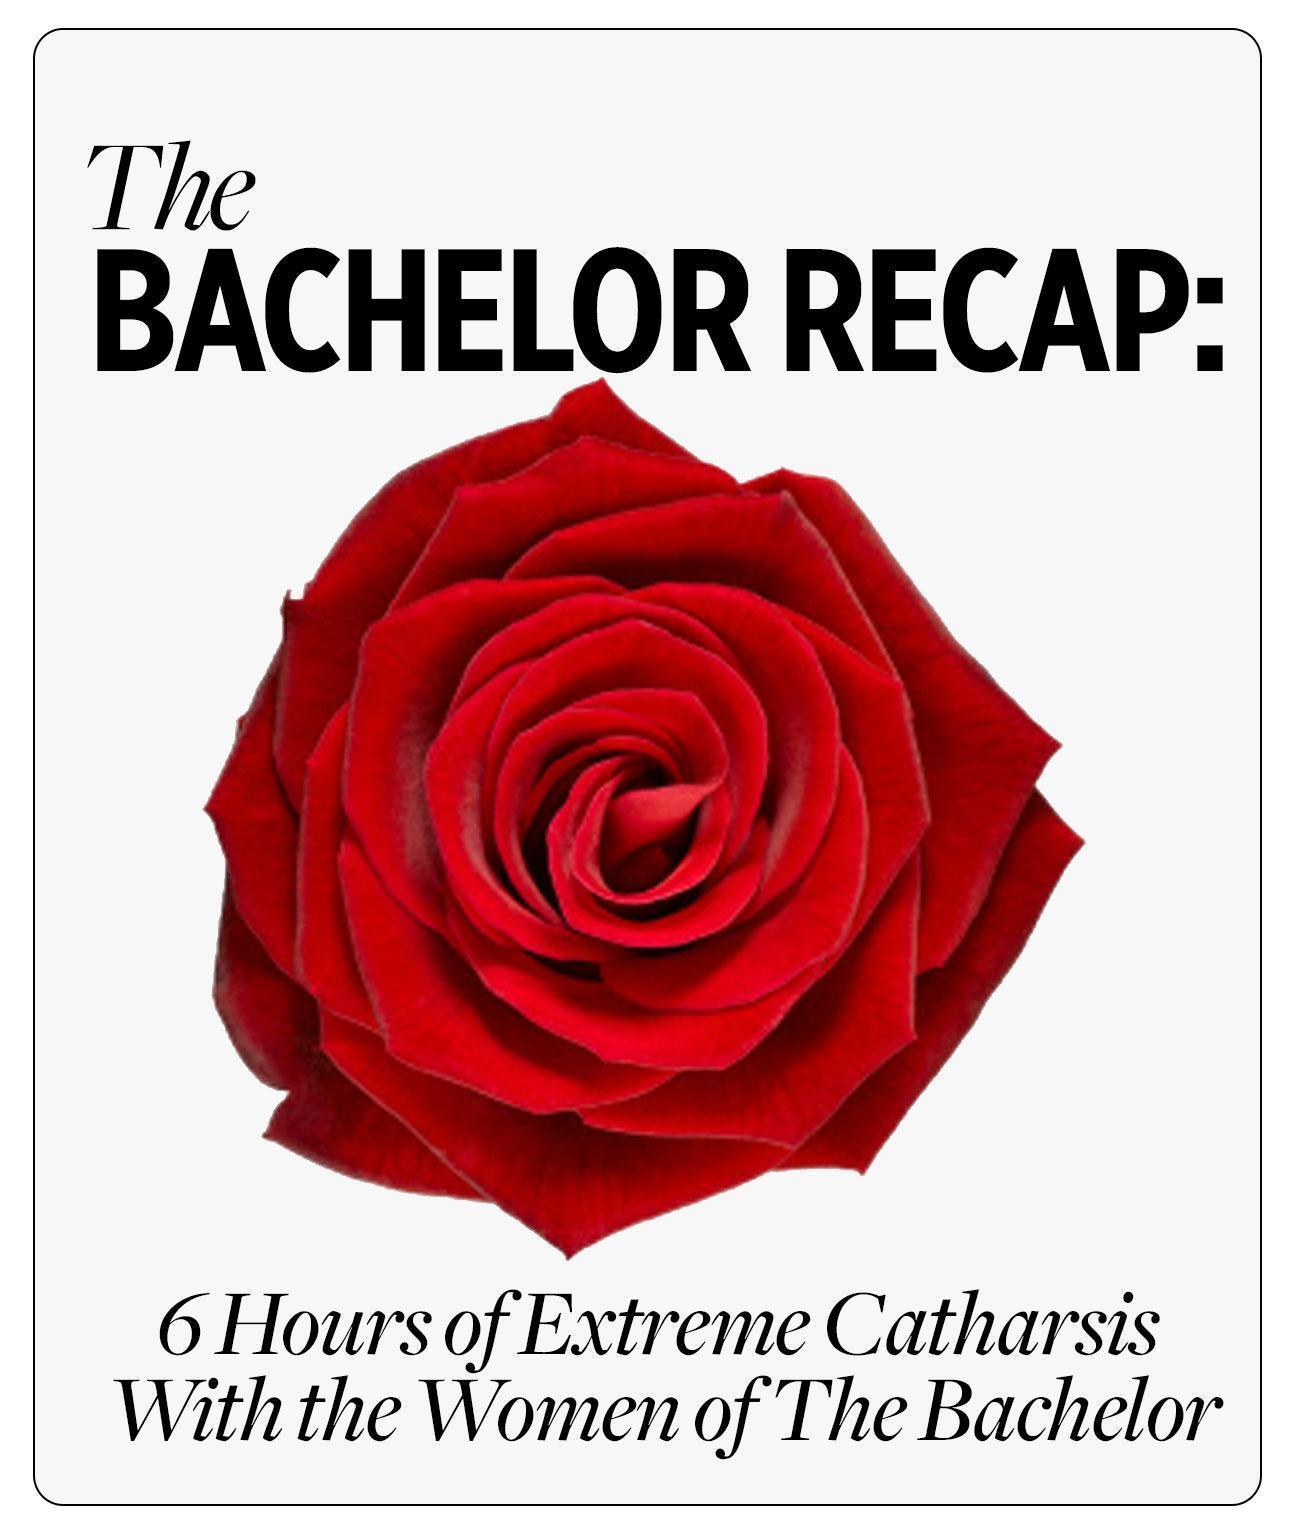 6 Hours of Extreme Catharsis With the Women of The Bachelor